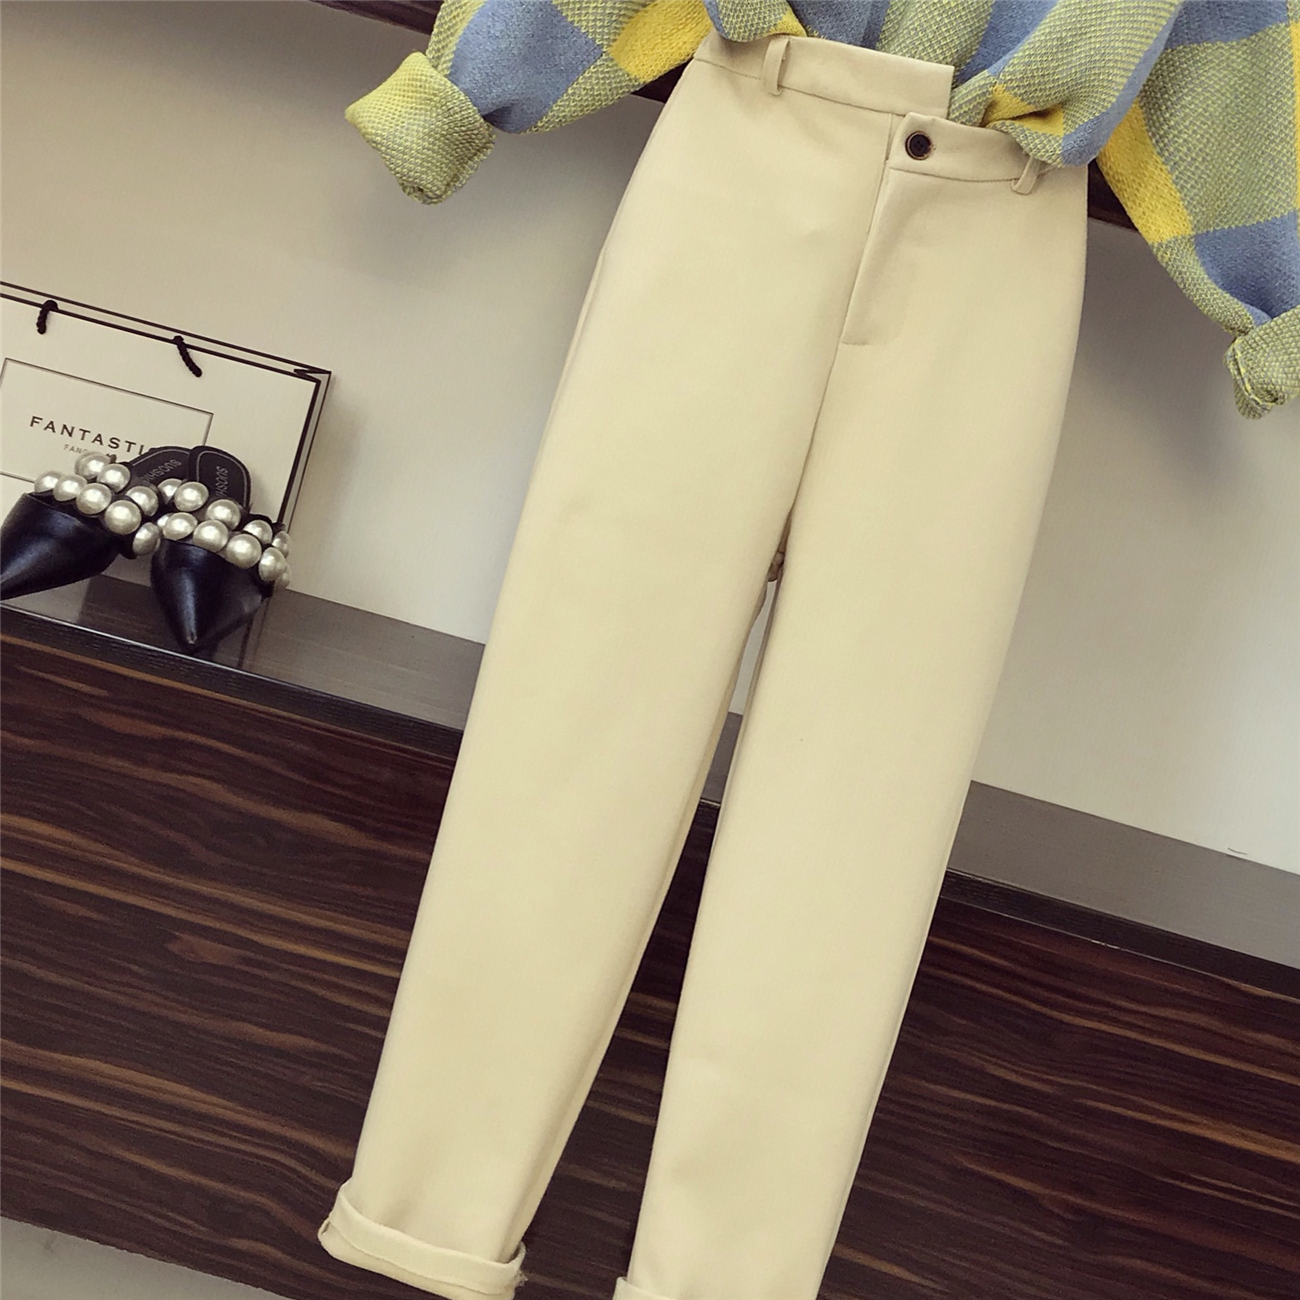 2018 New Fashion Autumn Women's Long Sleeve Loose Sweater + Woolen Haren Pants Two Pieces Students Leisure Pants Sets 16